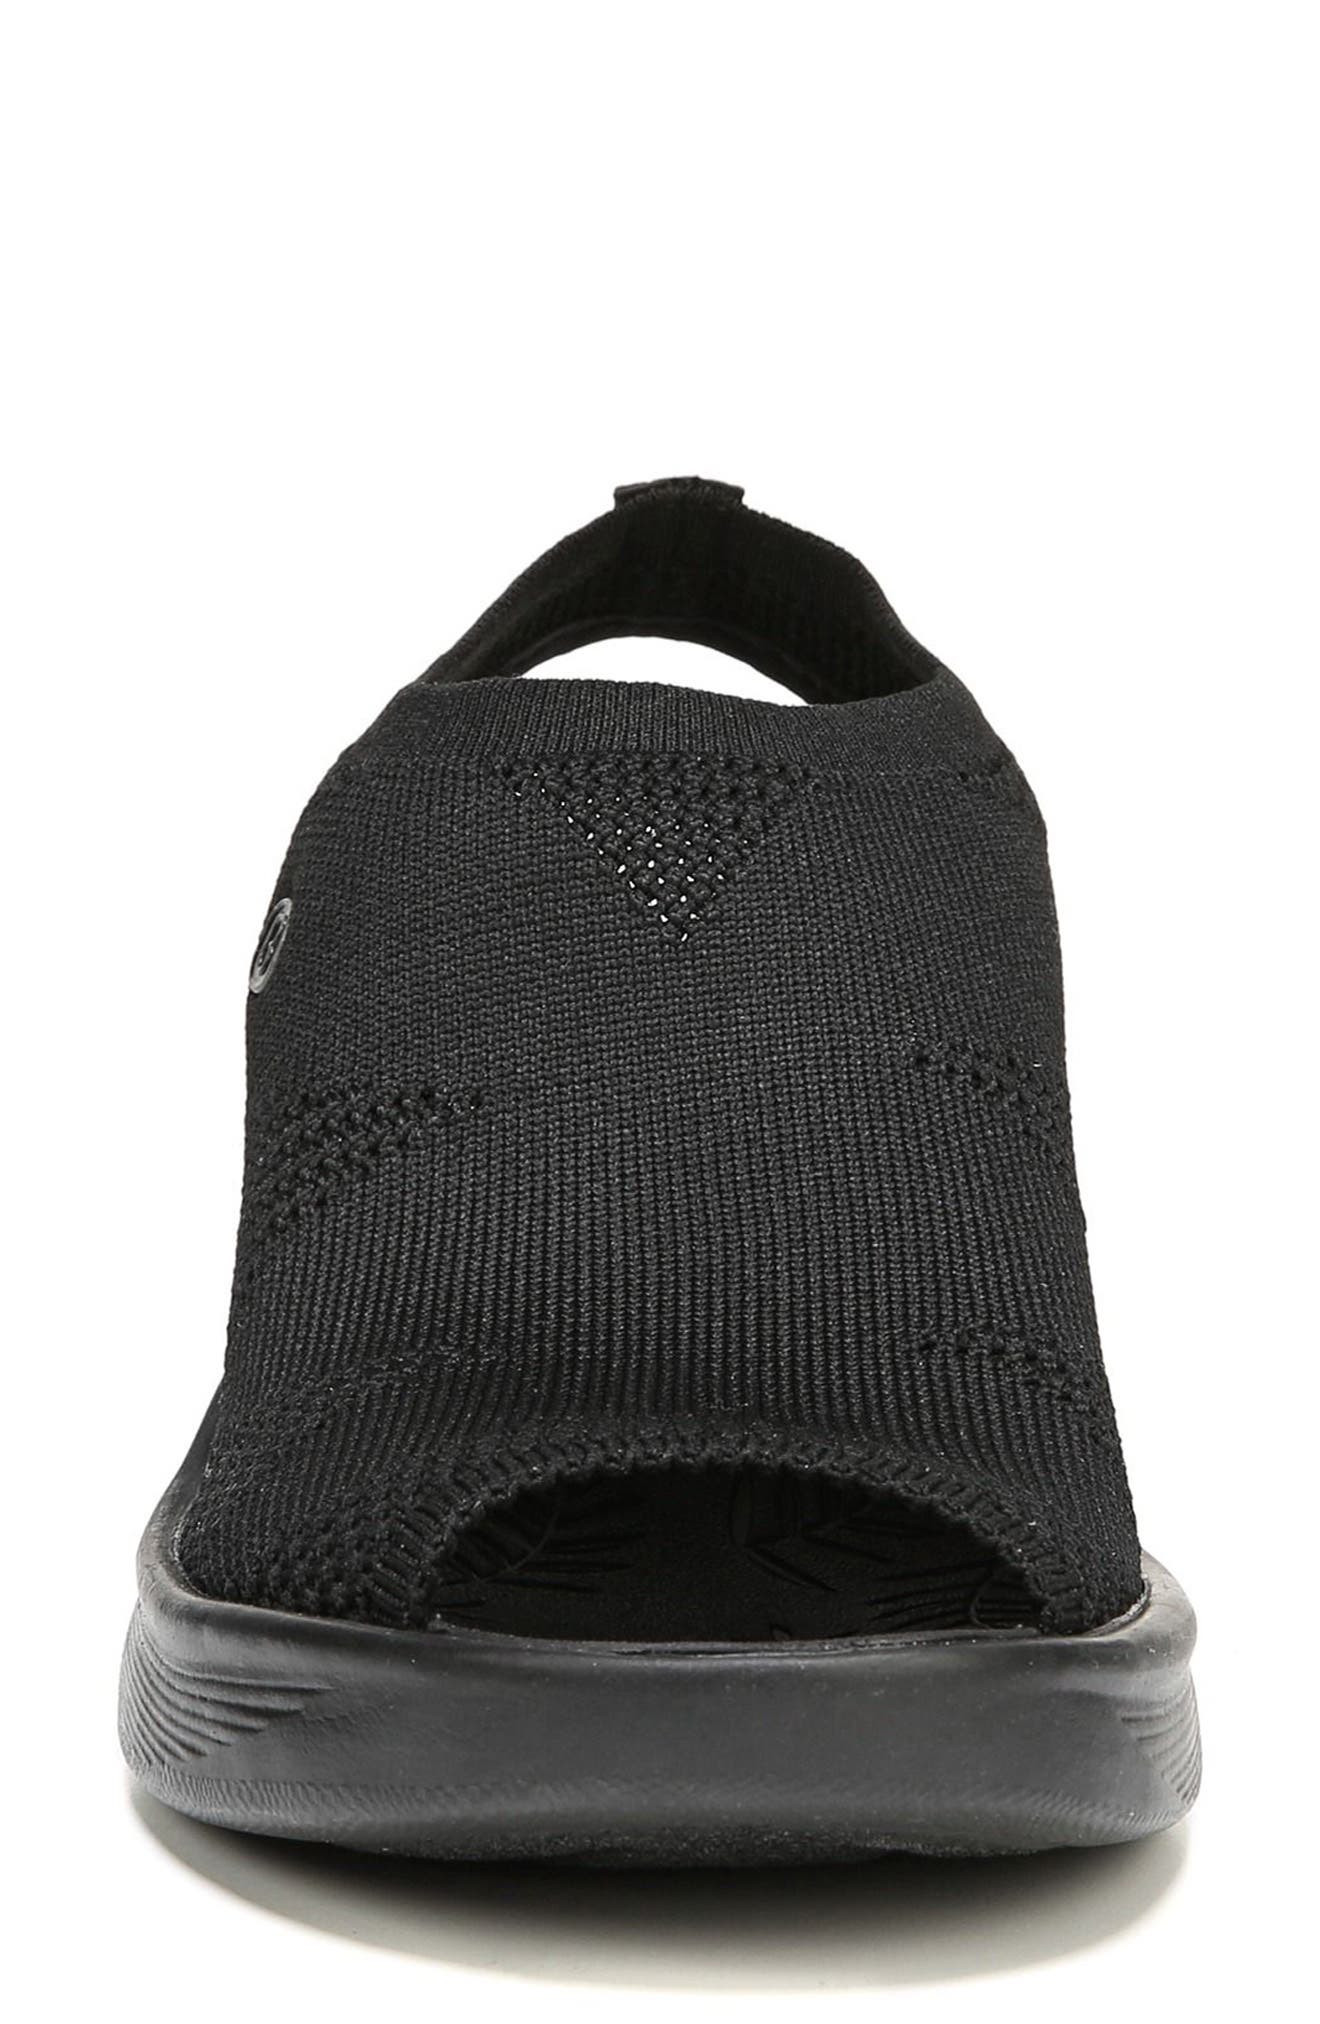 Secret Peep Toe Knit Sneaker,                             Alternate thumbnail 4, color,                             BLACK FABRIC